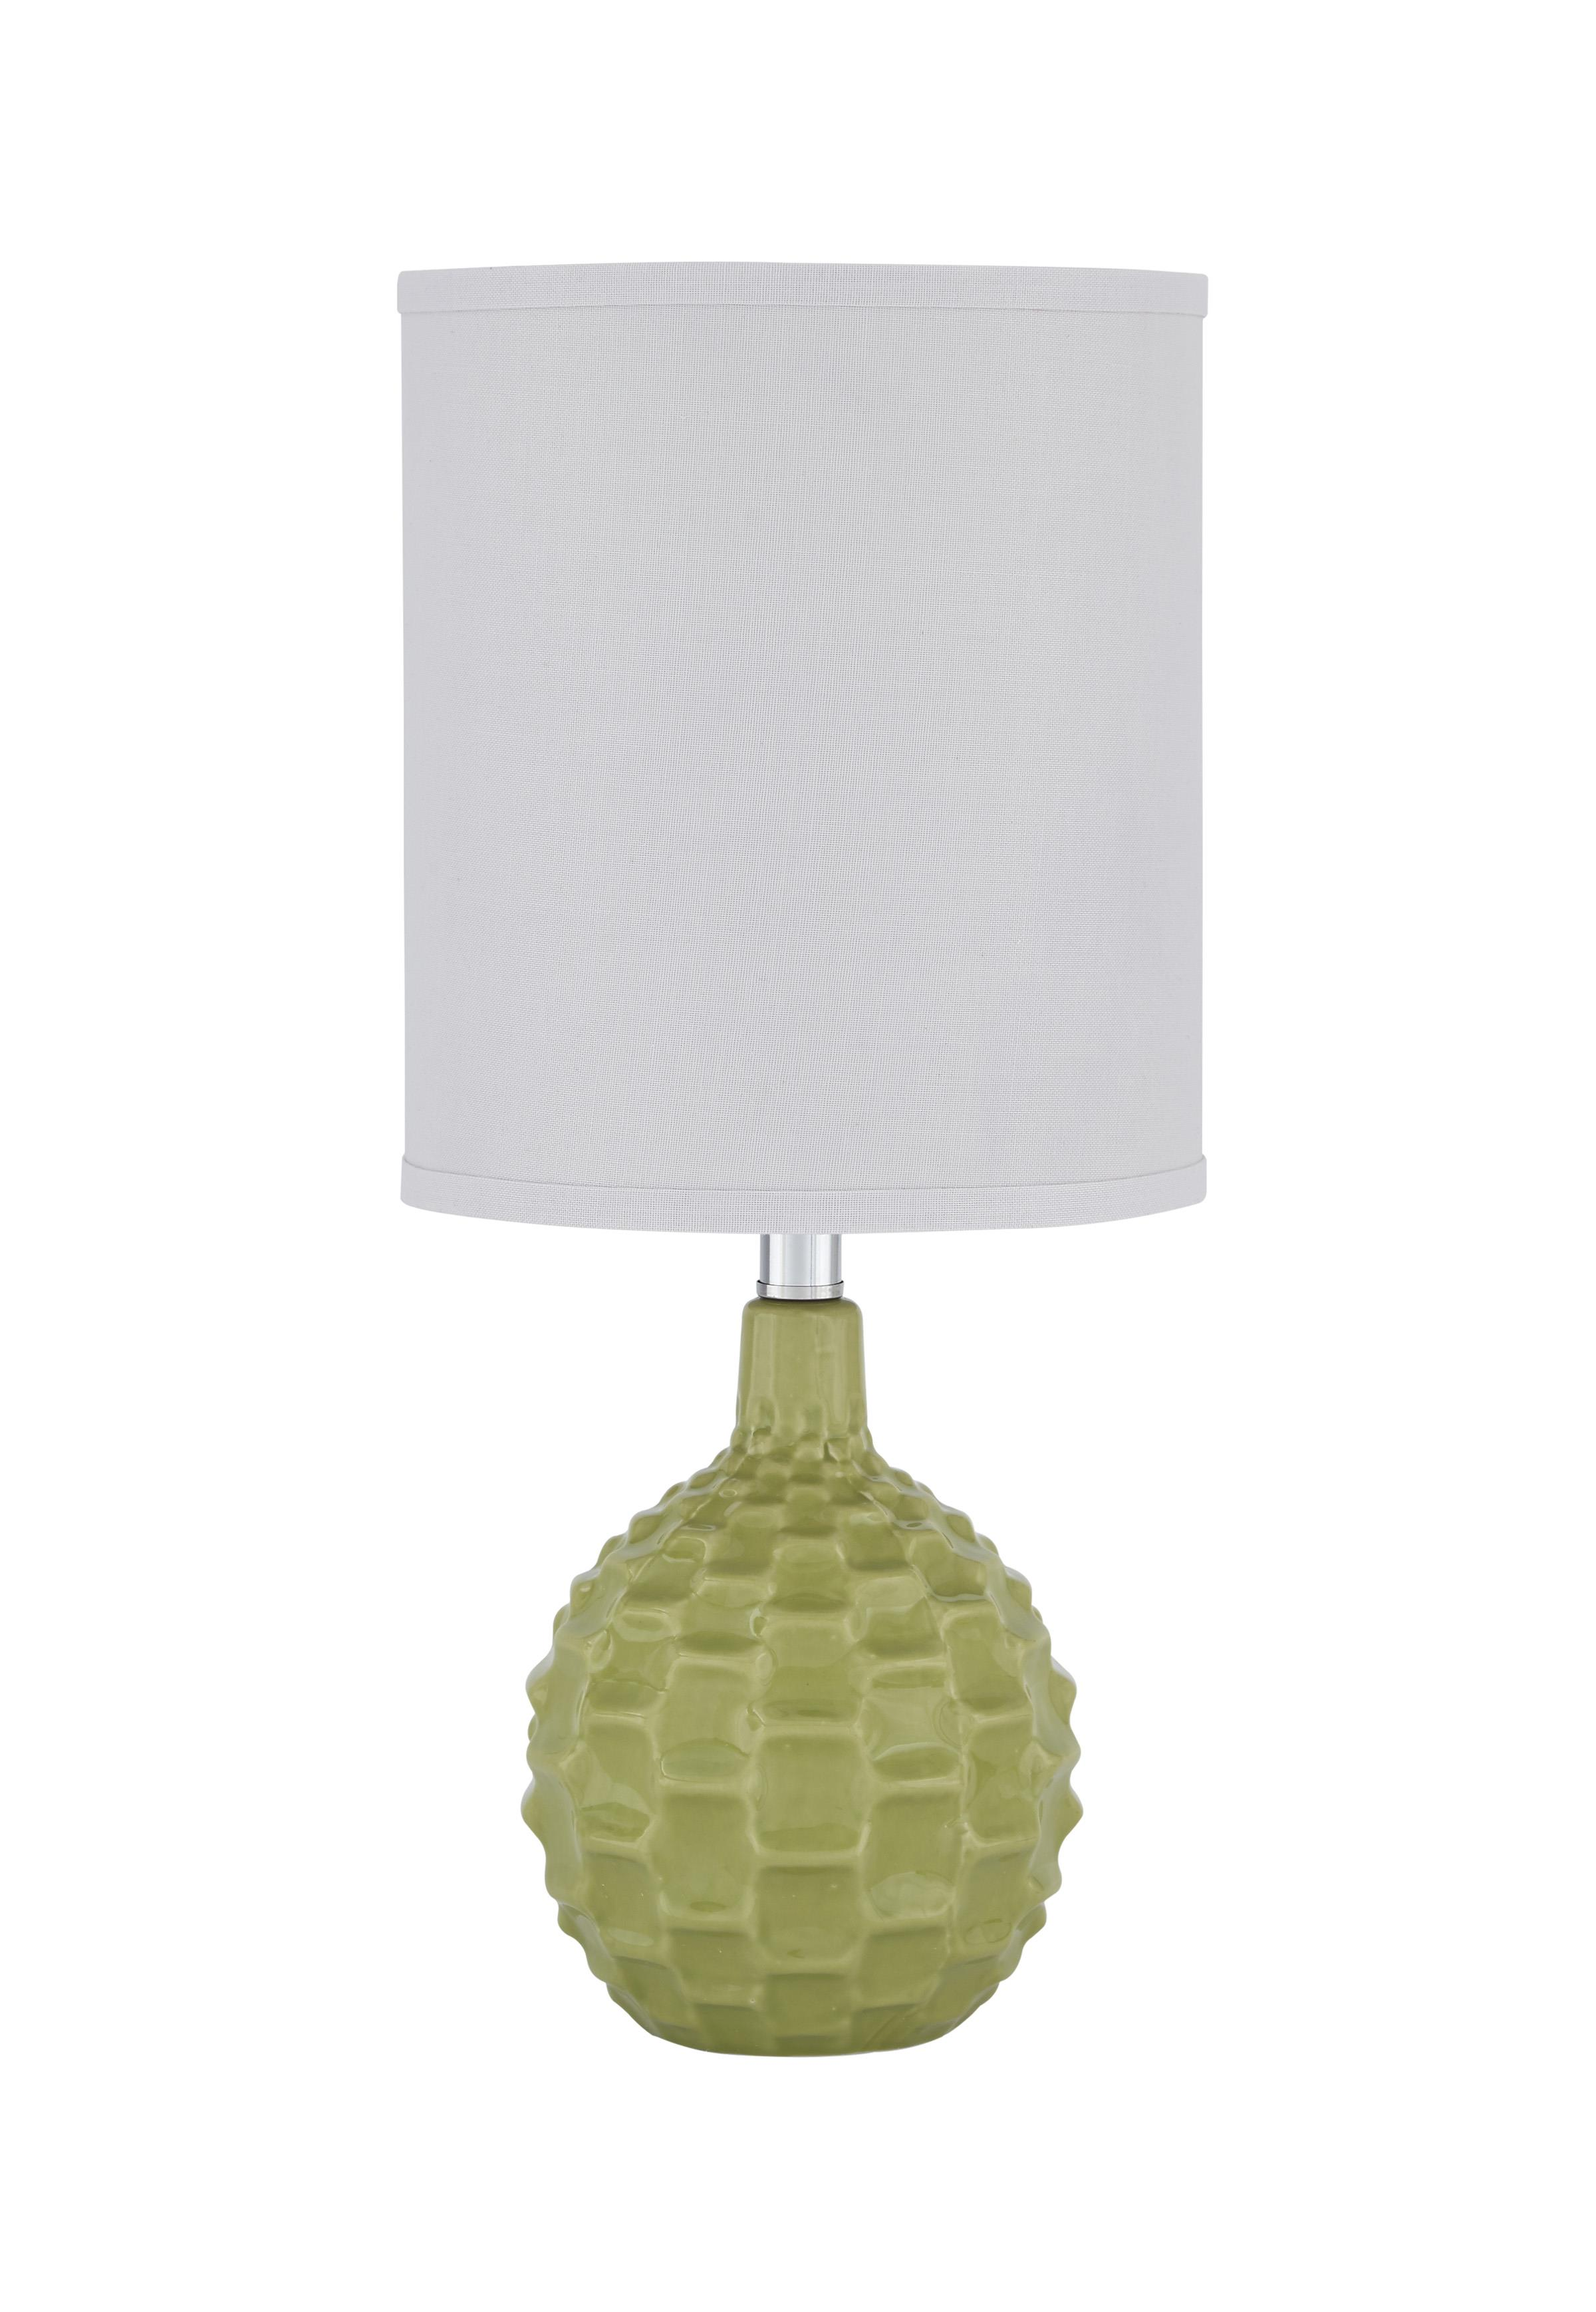 Signature Design by Ashley Lamps - Contemporary Sondre Green Ceramic Table Lamp - Item Number: L857424